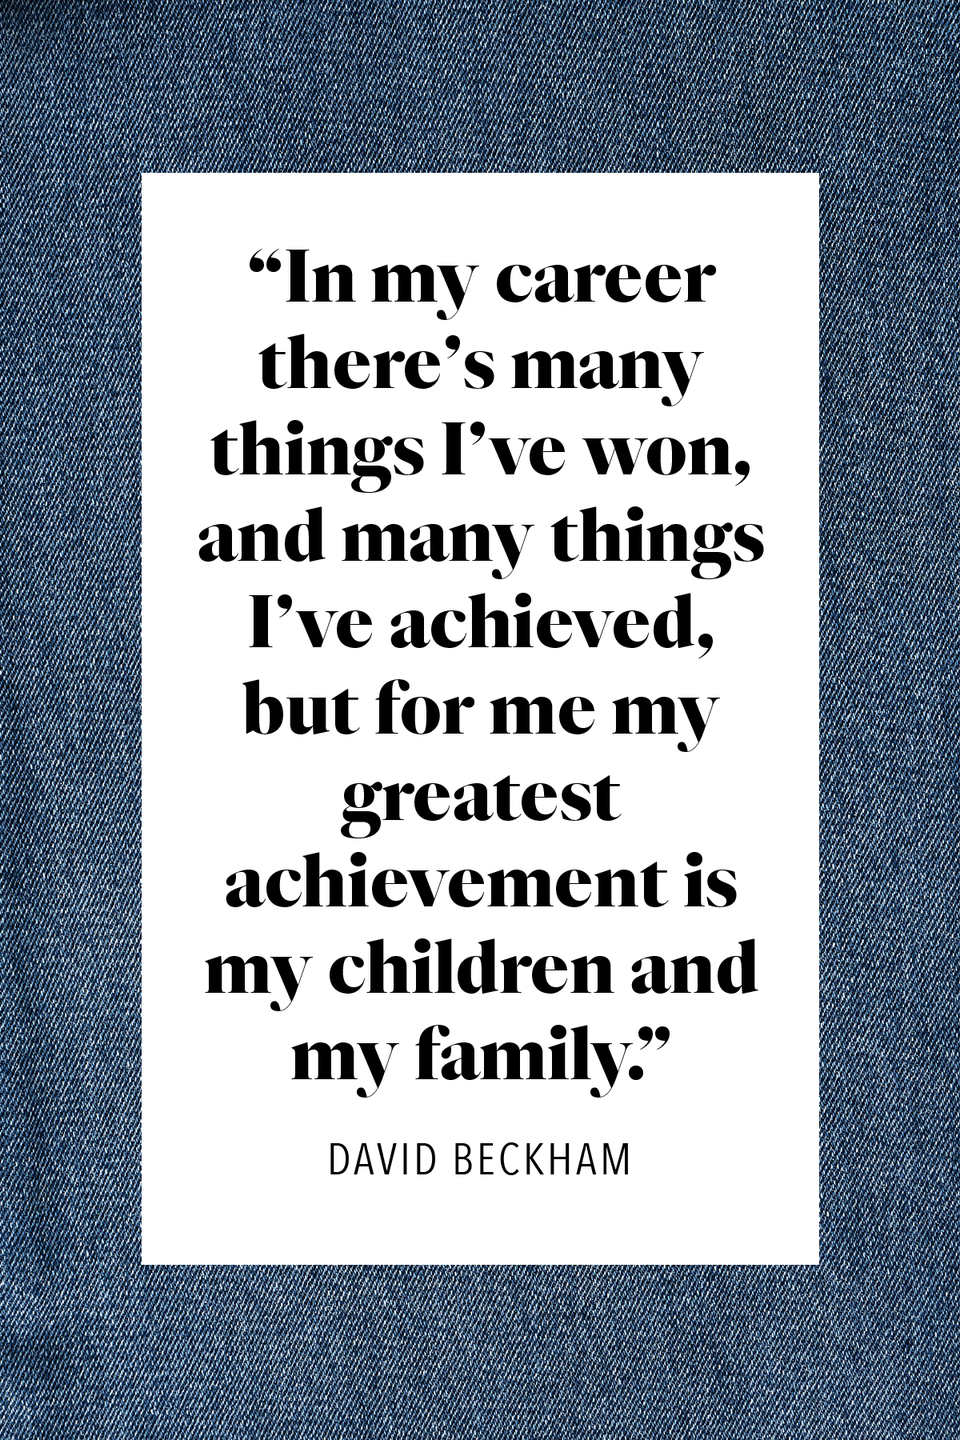 """<p>""""In my career there's many things I've won, and many things I've achieved,"""" the 44-year-old English former professional footballer said to <a href=""""https://people.com/celebrity/david-beckham-answers-your-questions/"""" rel=""""nofollow noopener"""" target=""""_blank"""" data-ylk=""""slk:People Magazine"""" class=""""link rapid-noclick-resp""""><em>People Magazine</em></a>, """"but for me my greatest achievement is my children and my family.""""</p>"""